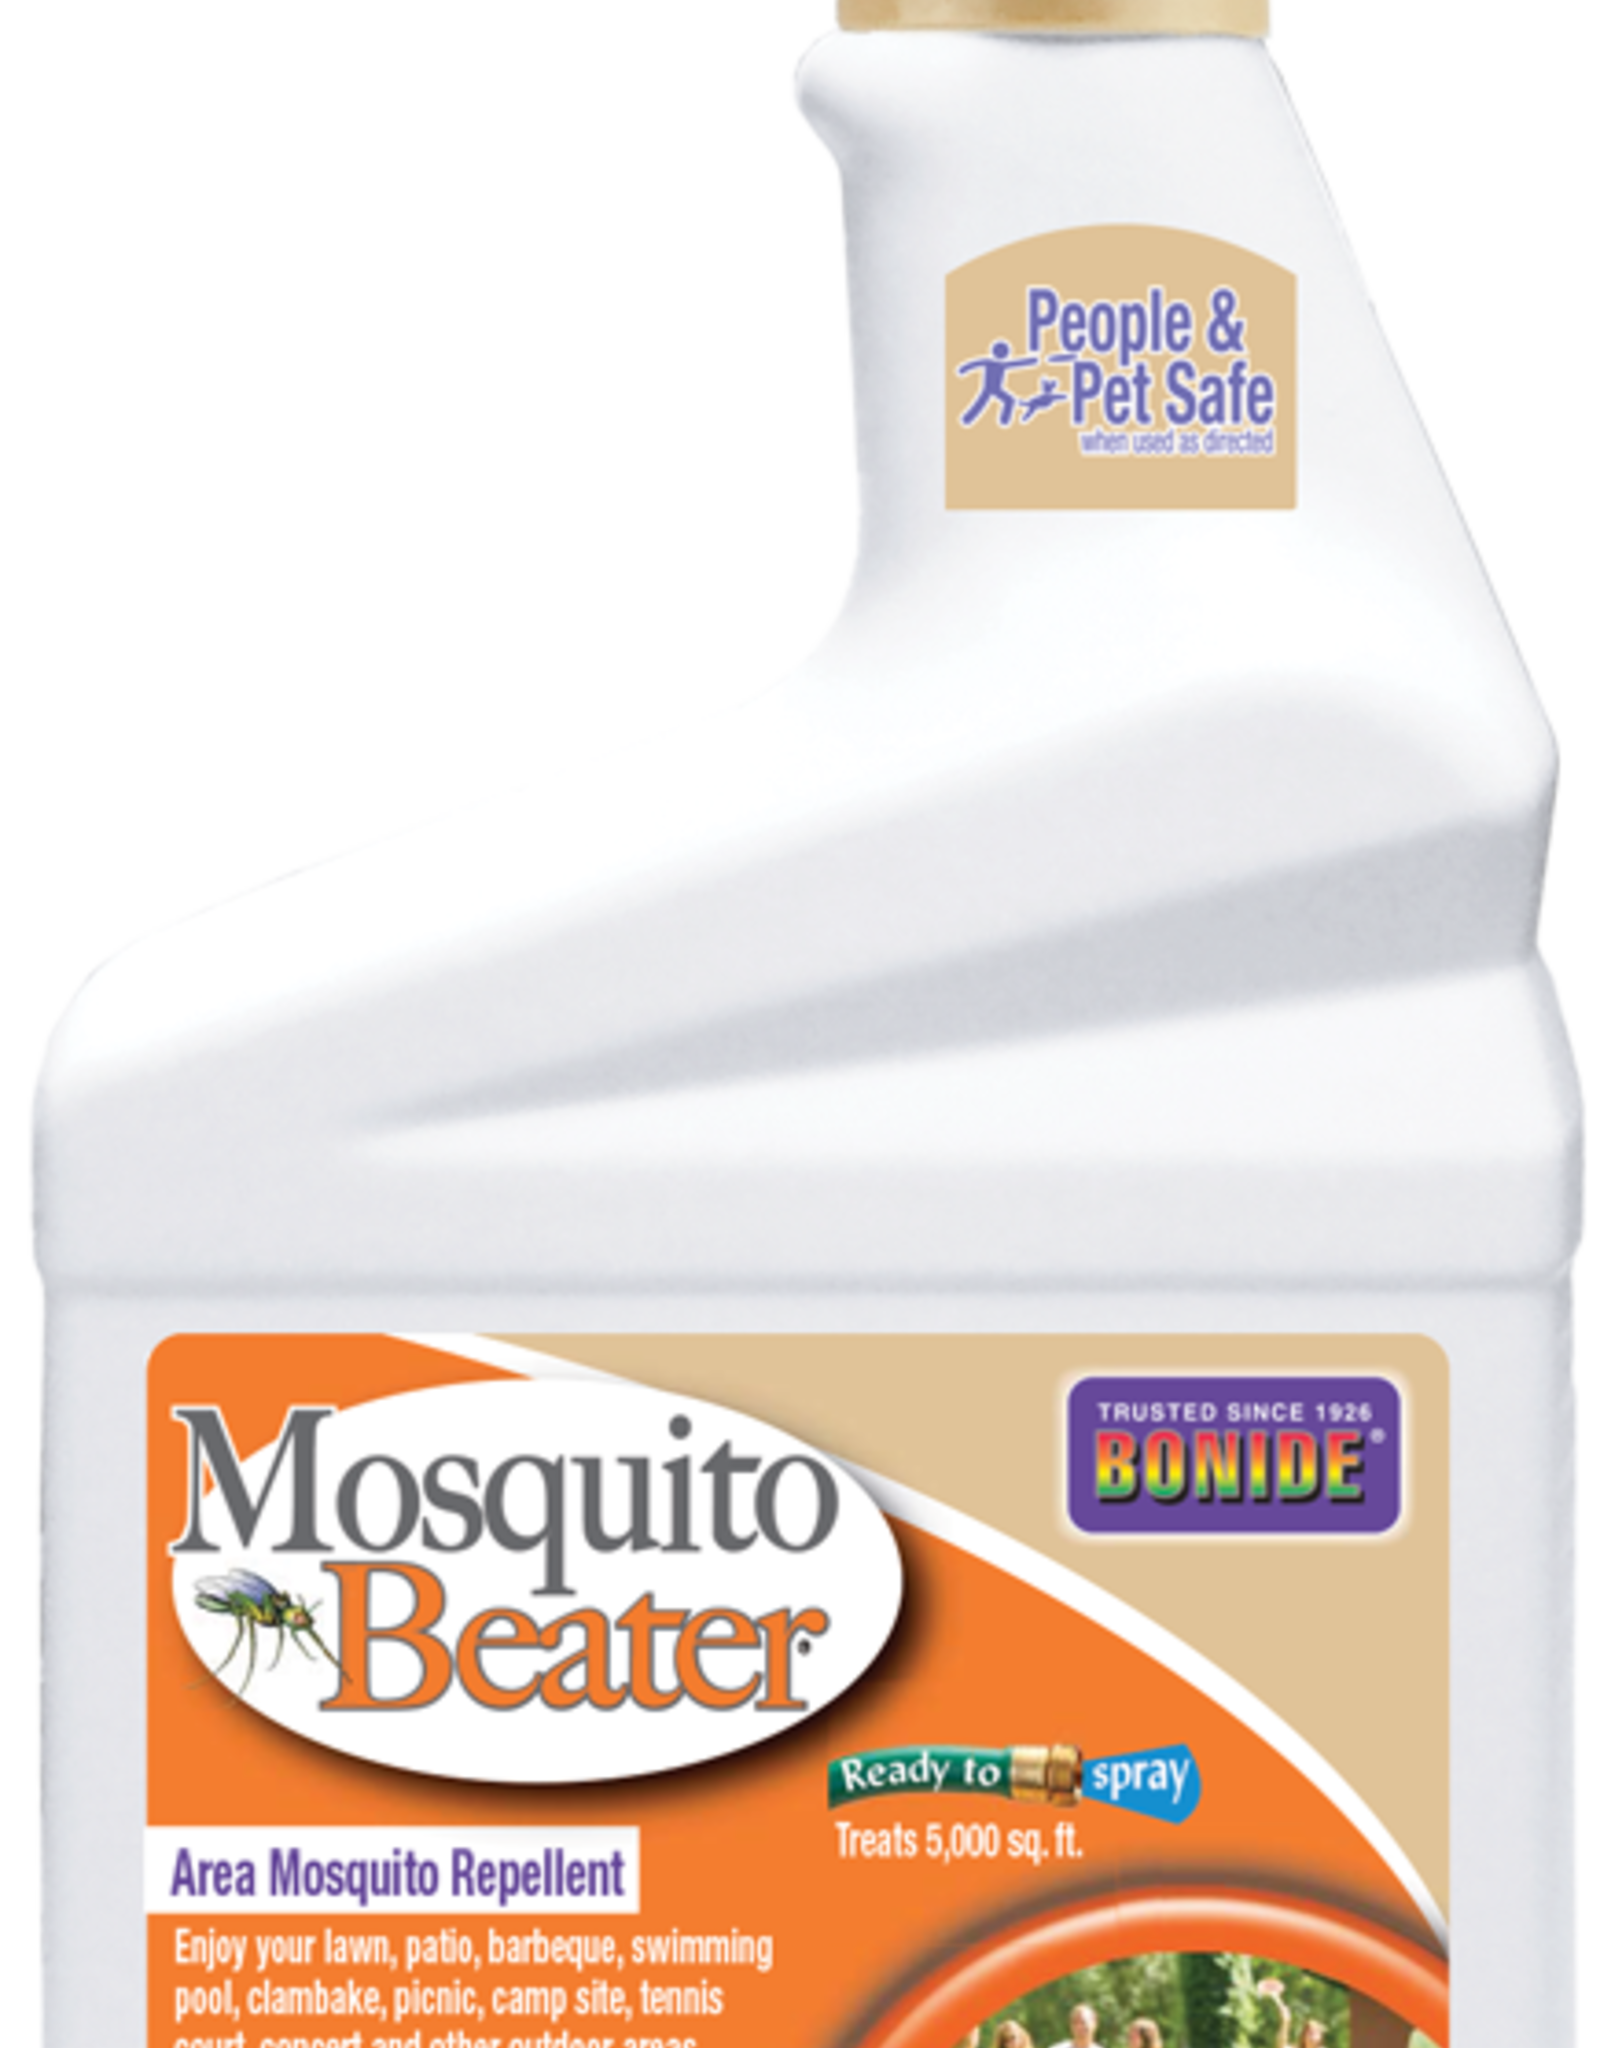 BONIDE PRODUCTS INC     P BONIDE ROSE RX 3 IN 1 (READY TO USE)  32OZ